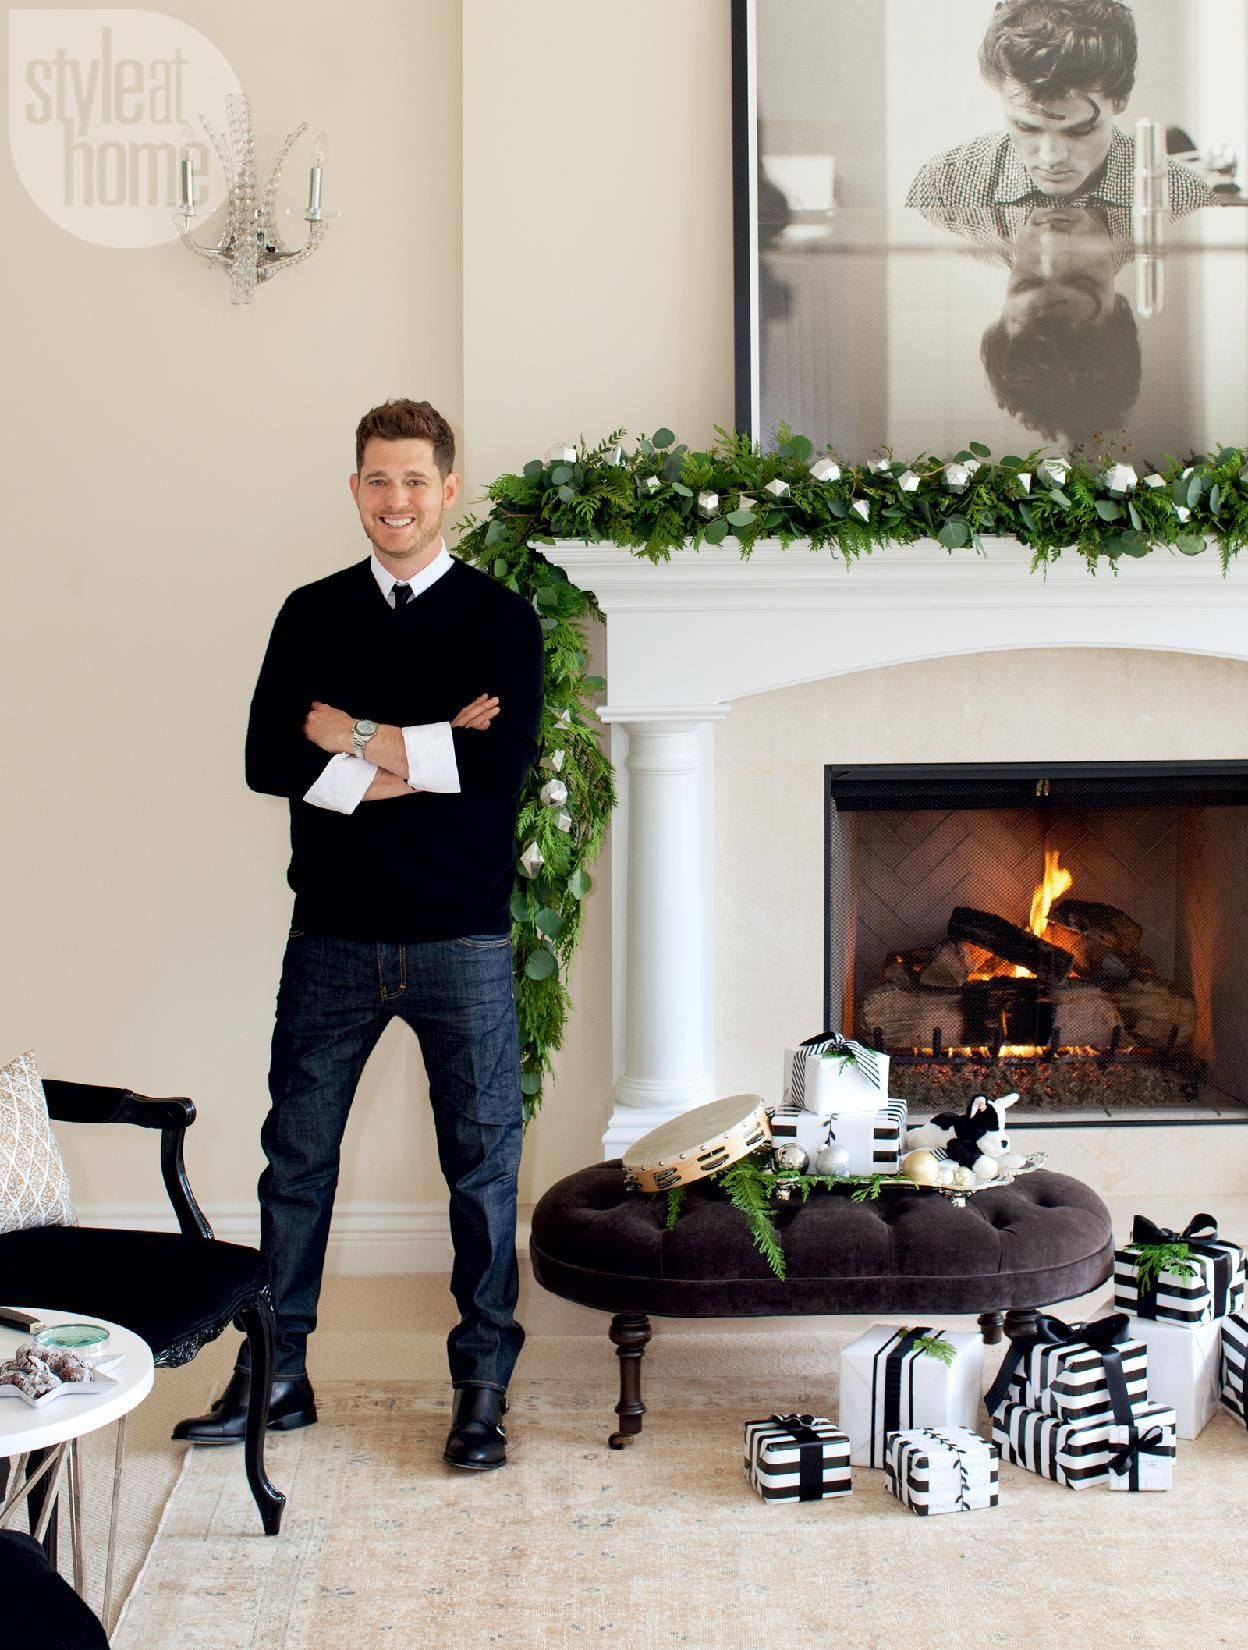 Michael Buble Weihnachten.Michael Buble Take Us Inside His Stylish Holiday Home The Holidaze